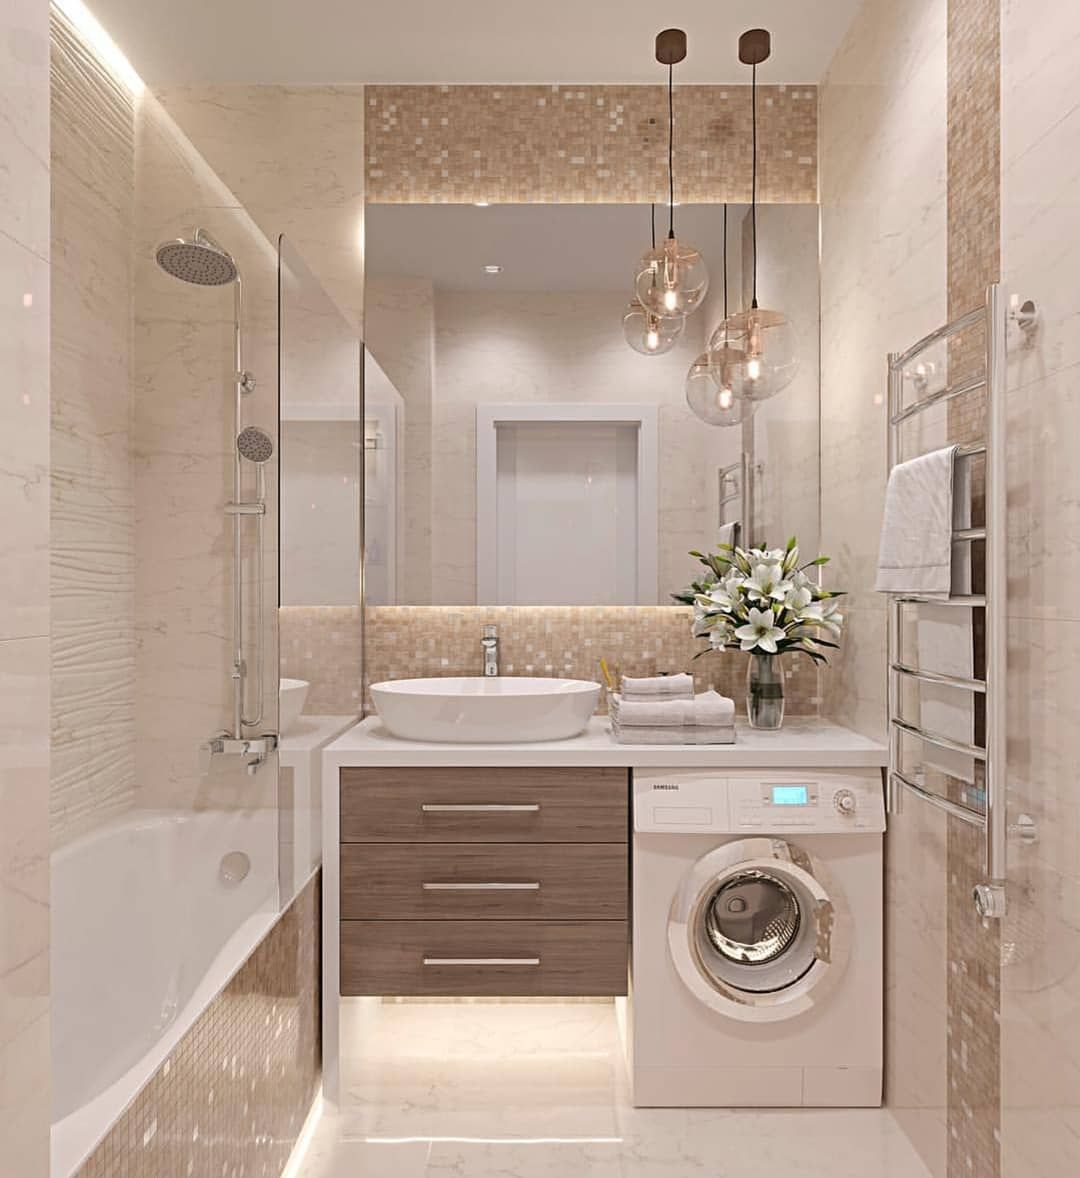 Photo of Kellerwohnung Badezimmer #bathroomlaundry